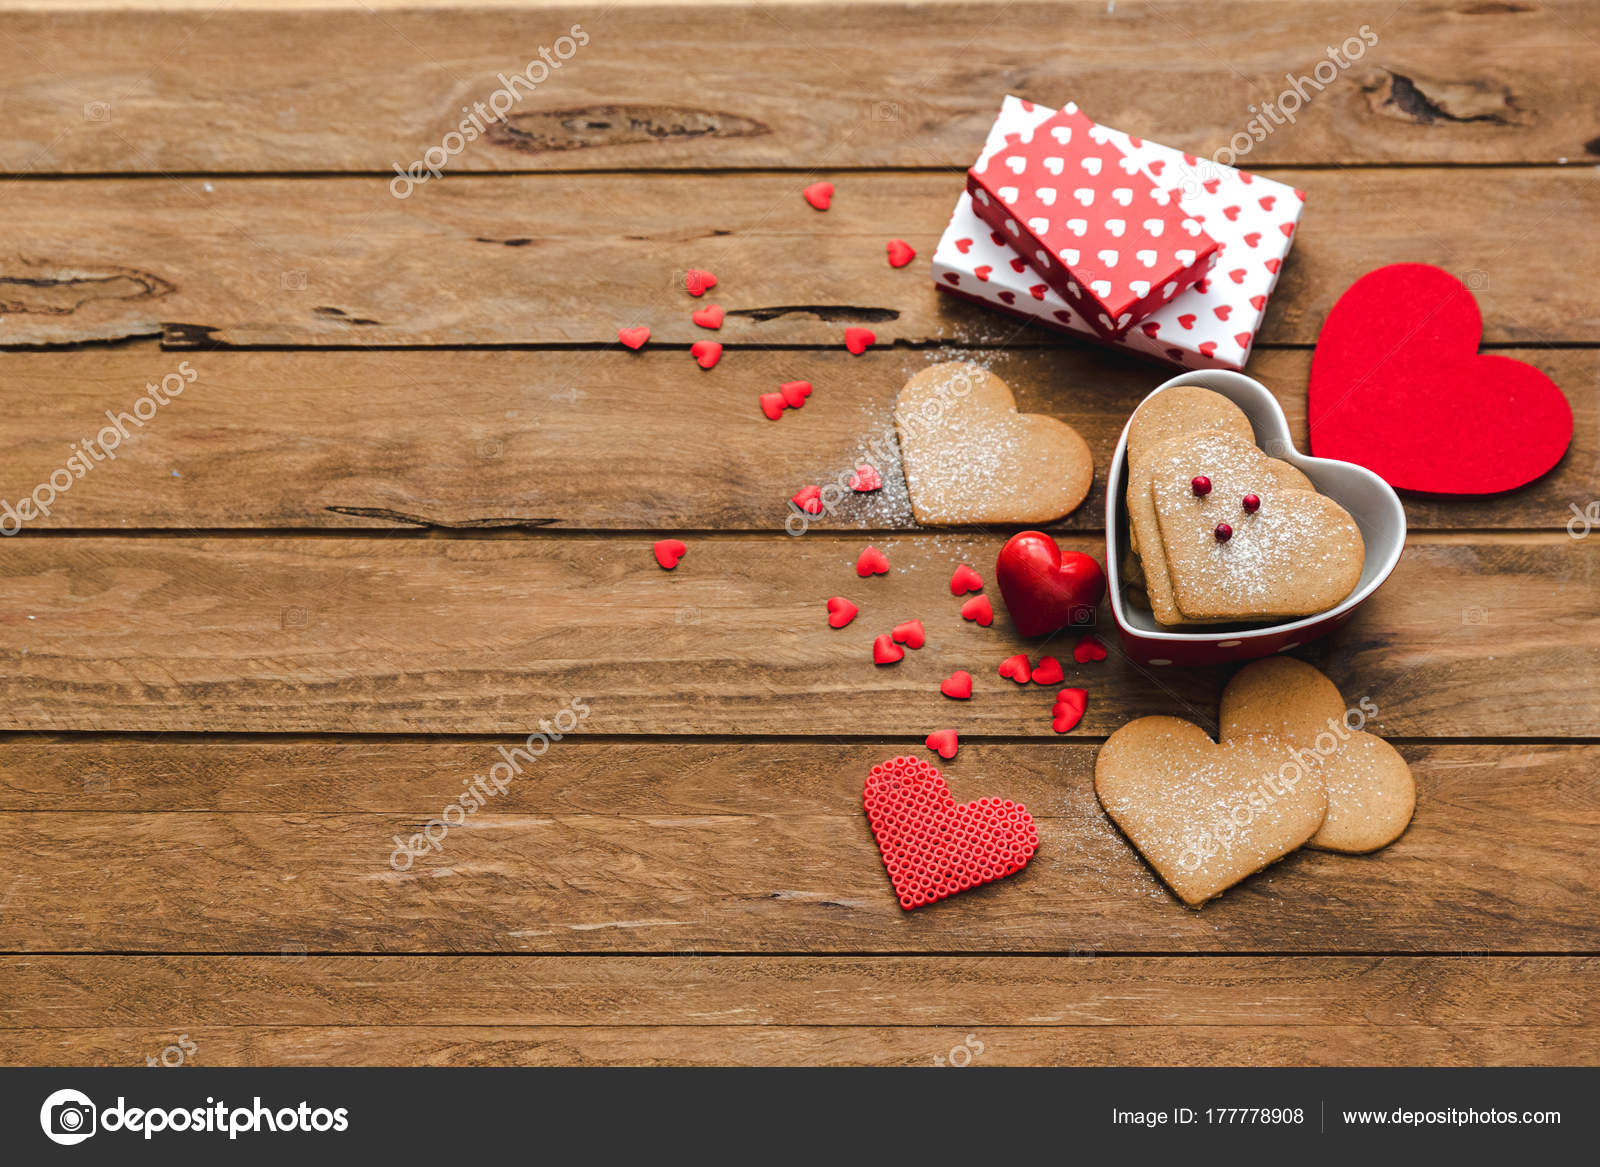 Heart Shaped Cookies Gifts Wooden Background Valentine Day Homemade